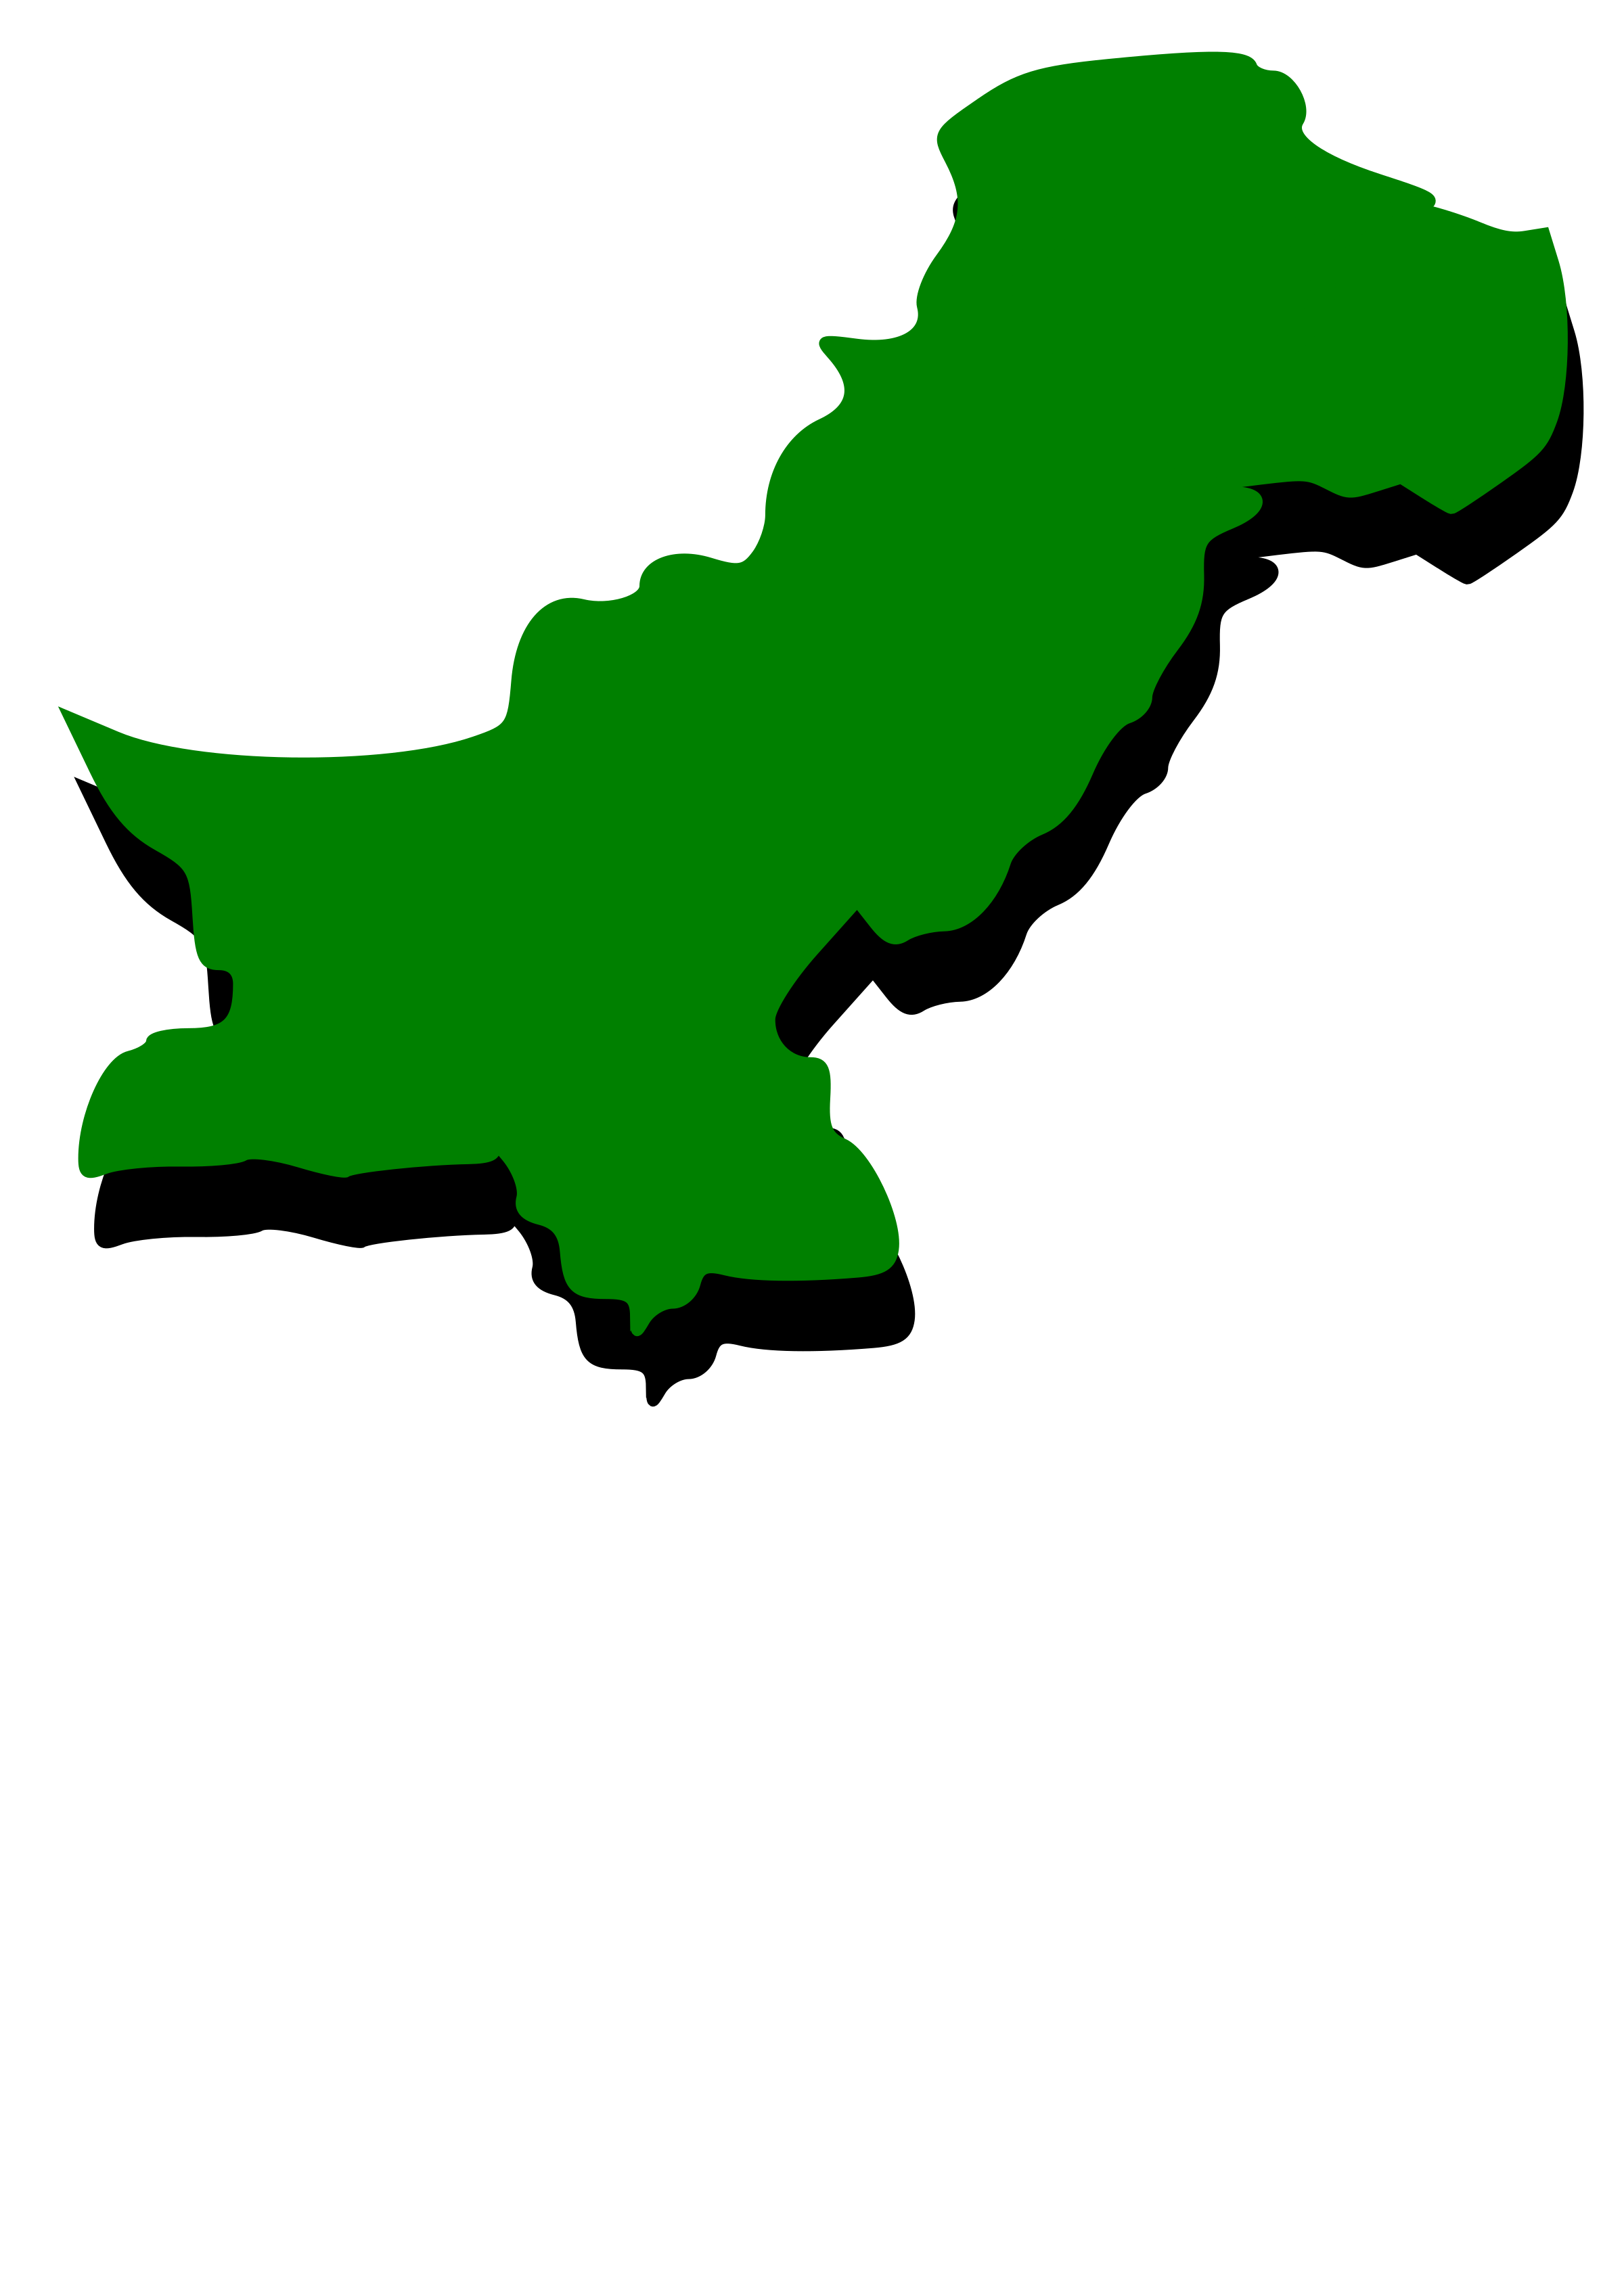 Embossed outline map of Pakistan with green fill by taughtware